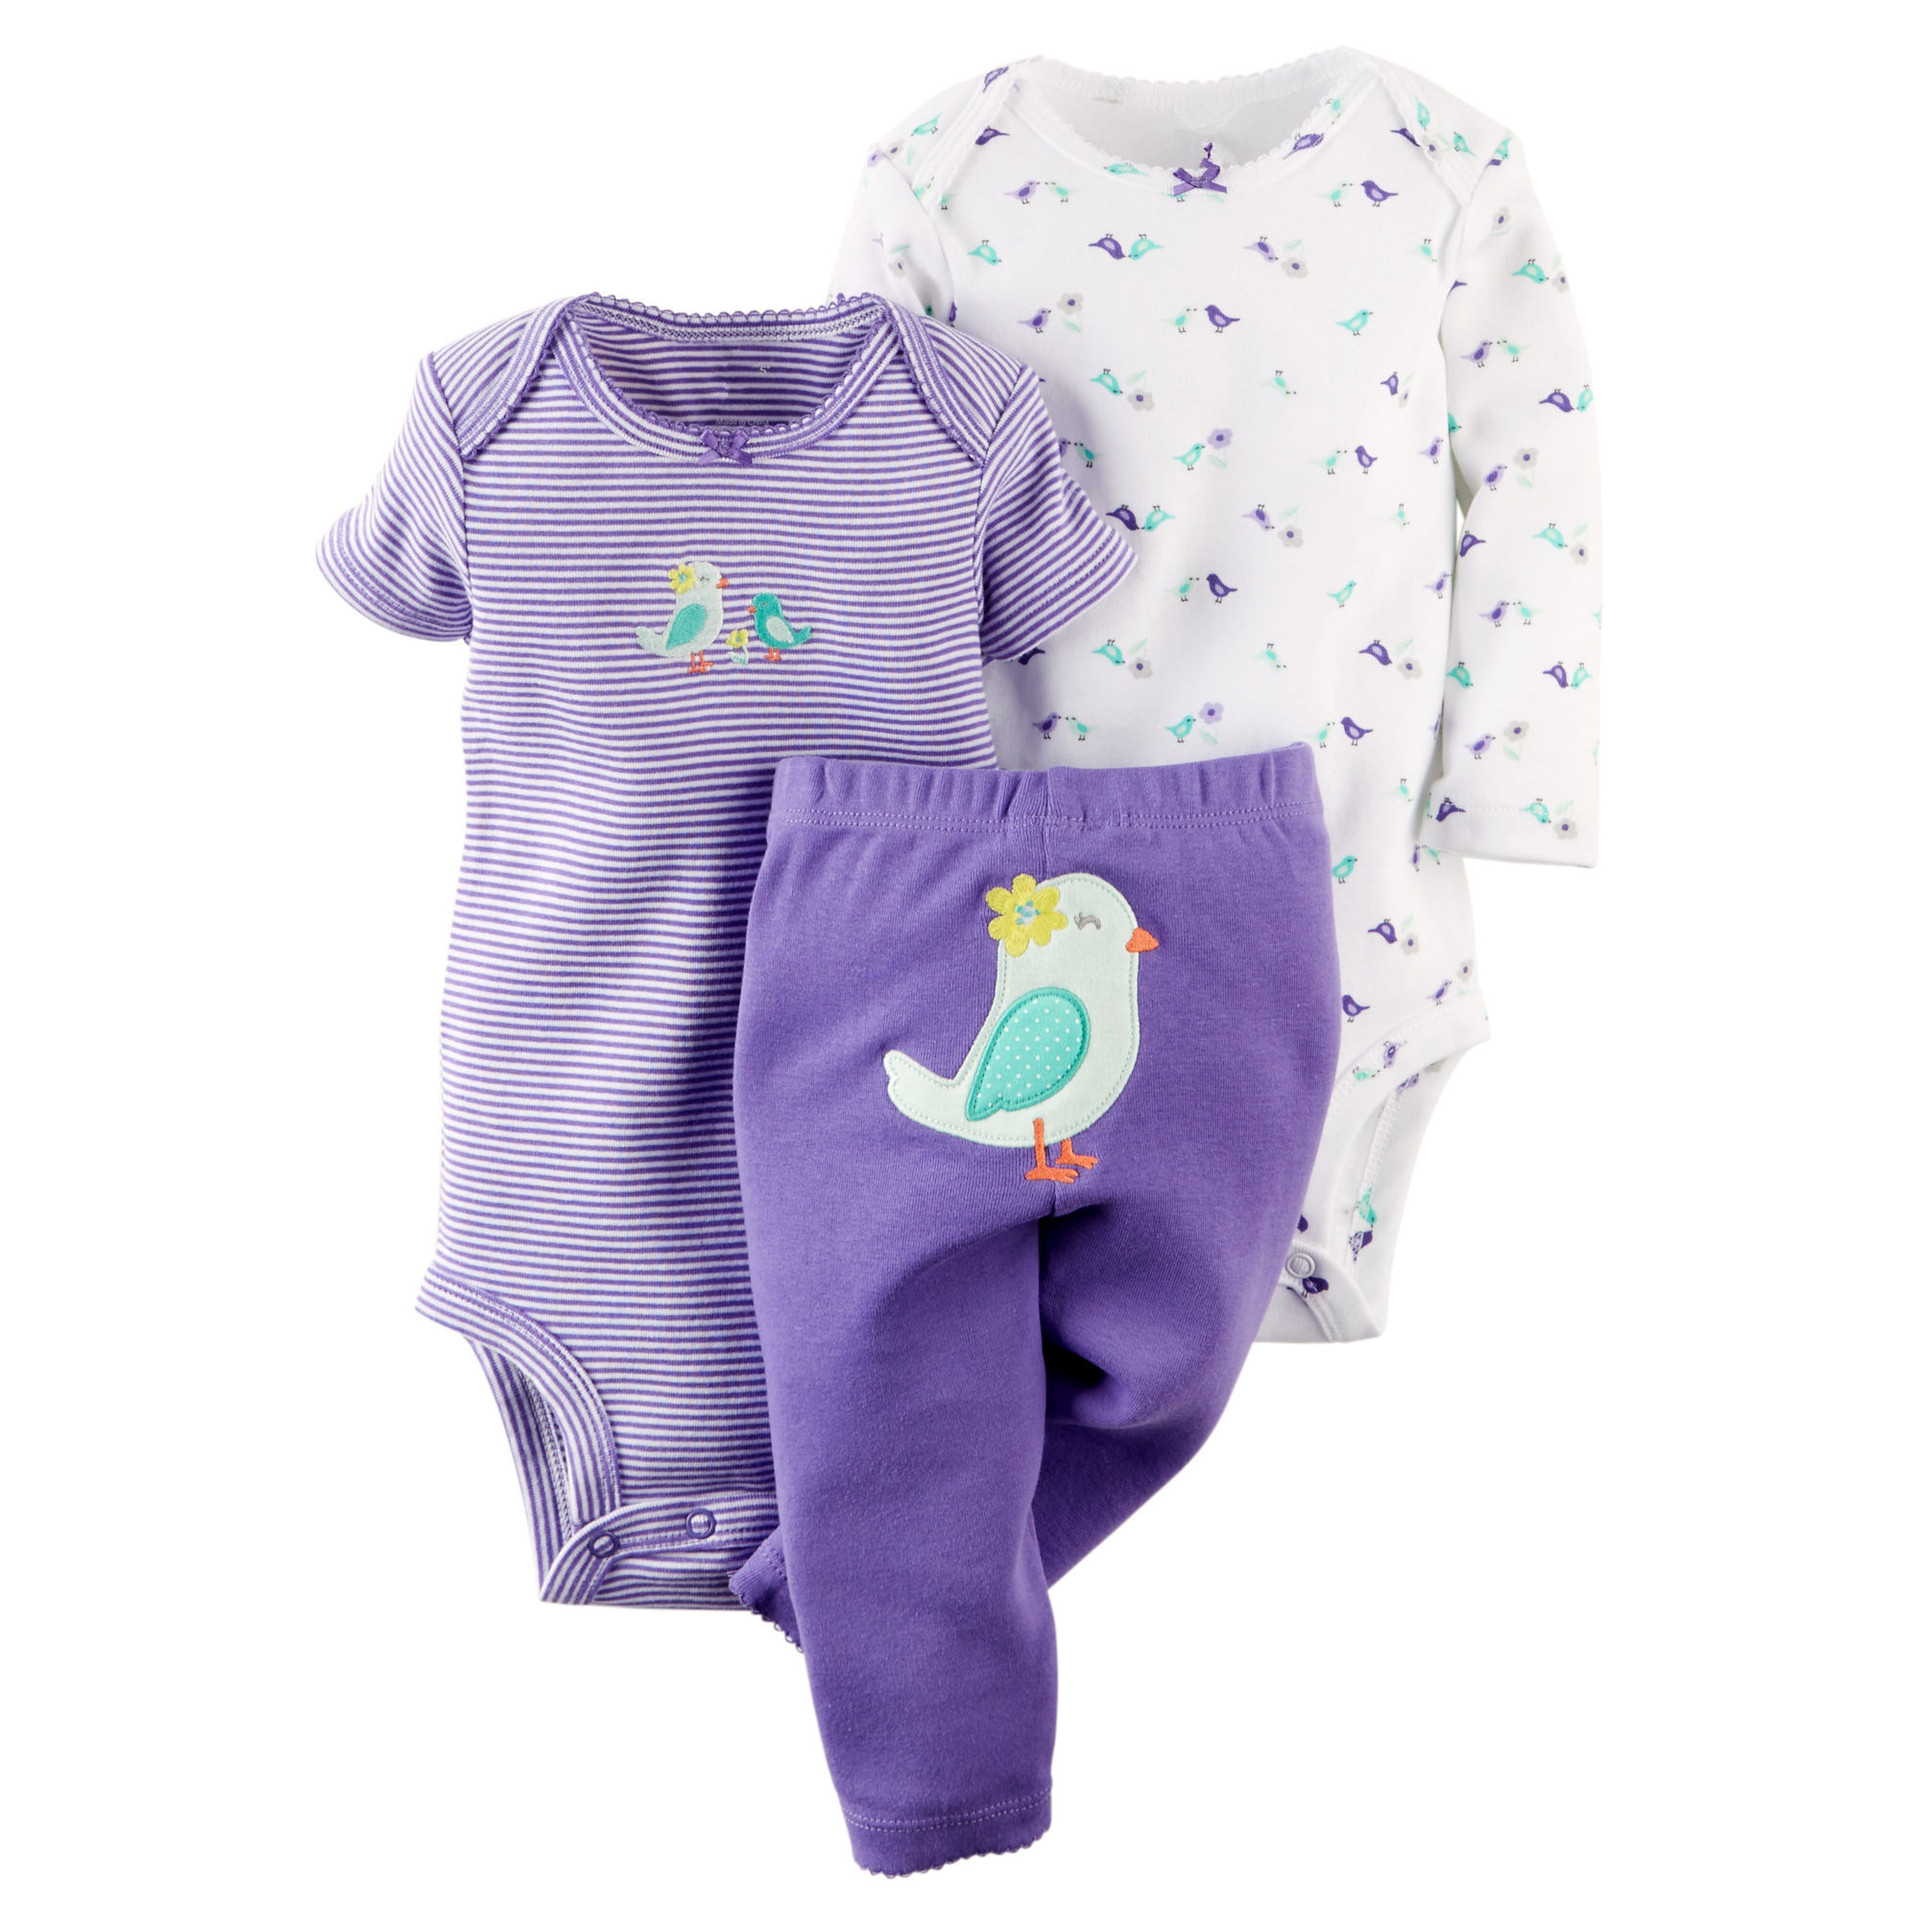 3pcs Baby Girl Boy Newborn Kids Clothing Sets Spring Autumn Rompers Playsuit Jumpsuit + Pants Trousers Bebe Infant Cute Clothes baby products bebe girl bebe boy newborn clothes baby costume thick warm infant baby rompers kids winter clothes jumpsuit hooded